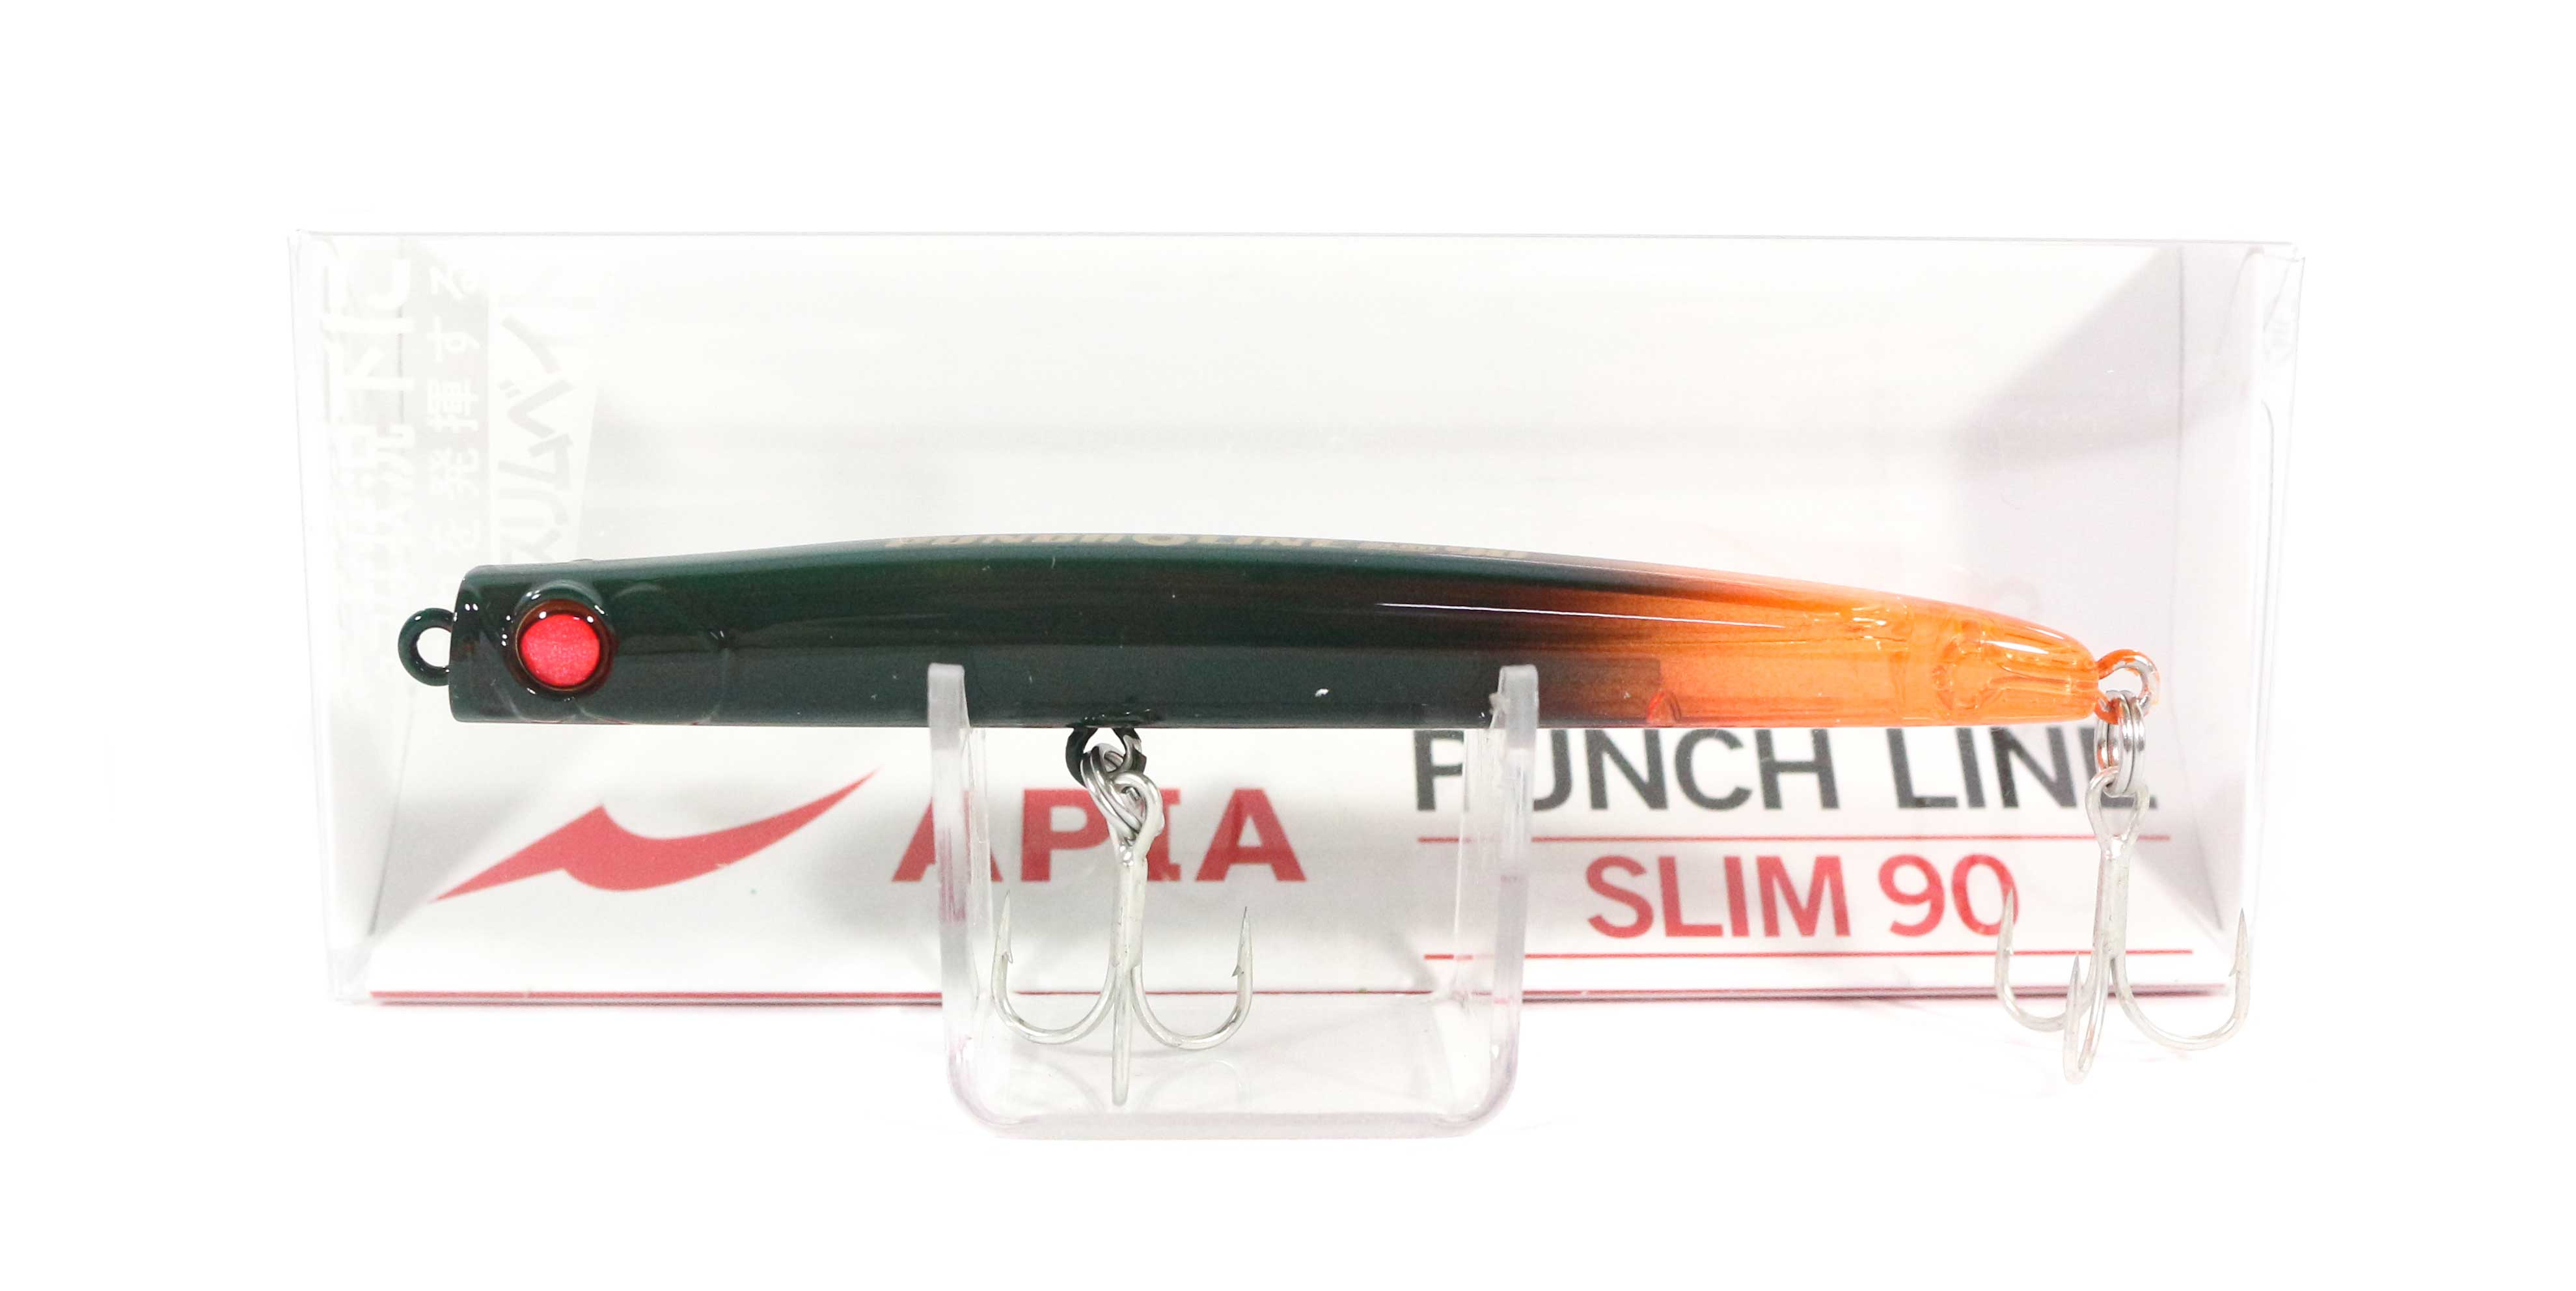 Apia Punch Line 90 Slim Sinking Pencil Lure 102 (7637)